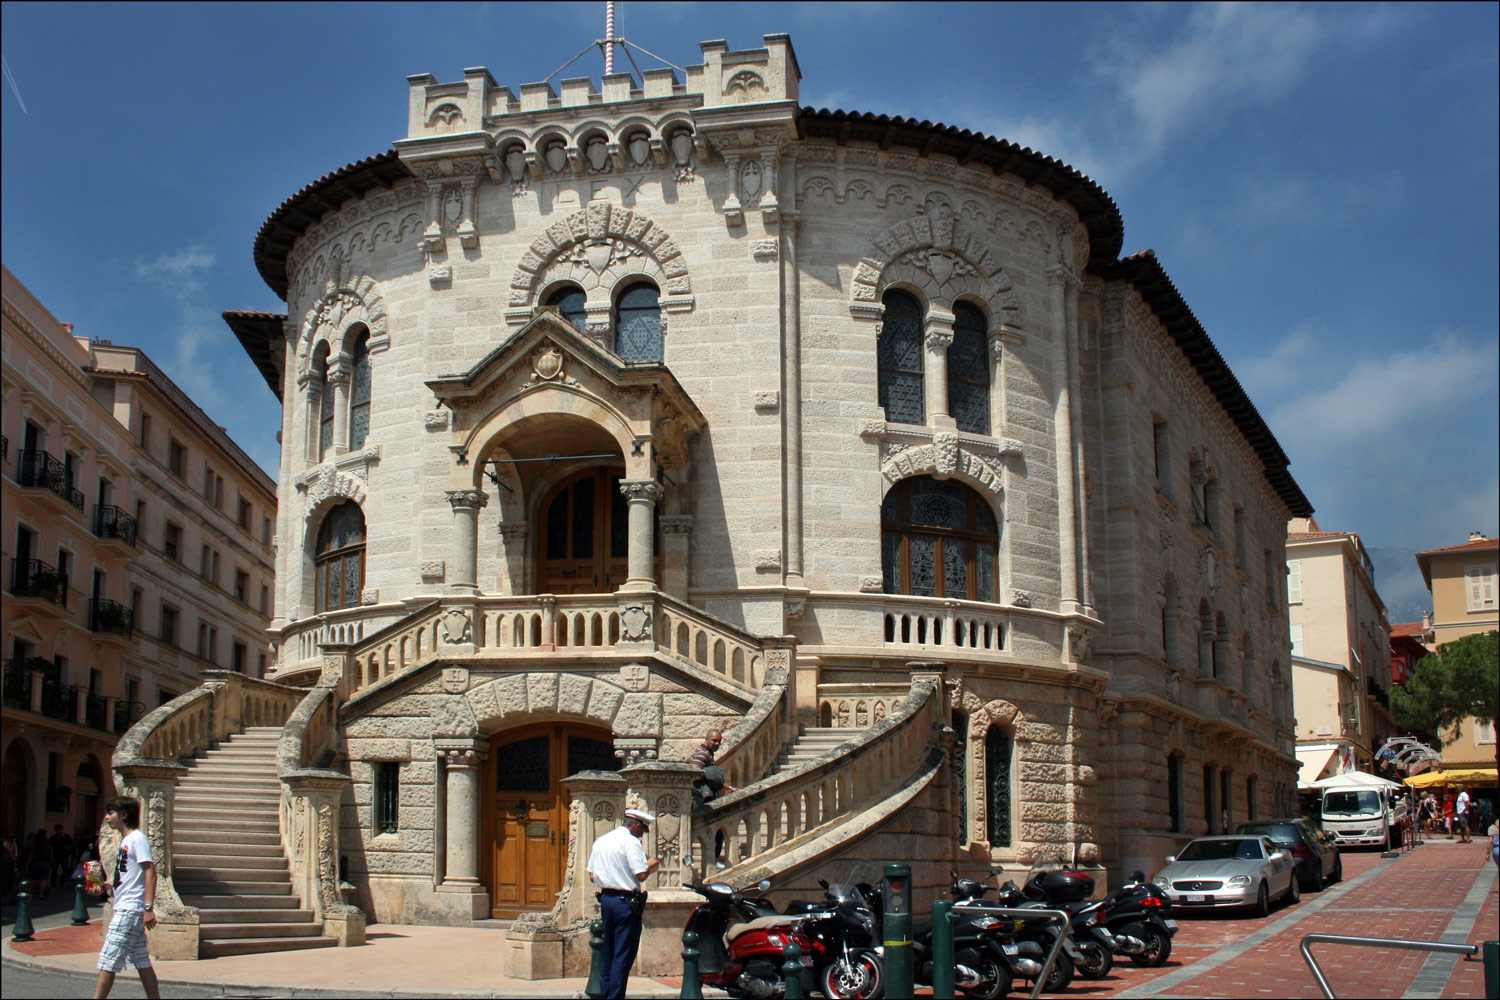 The Monaco Courthouse